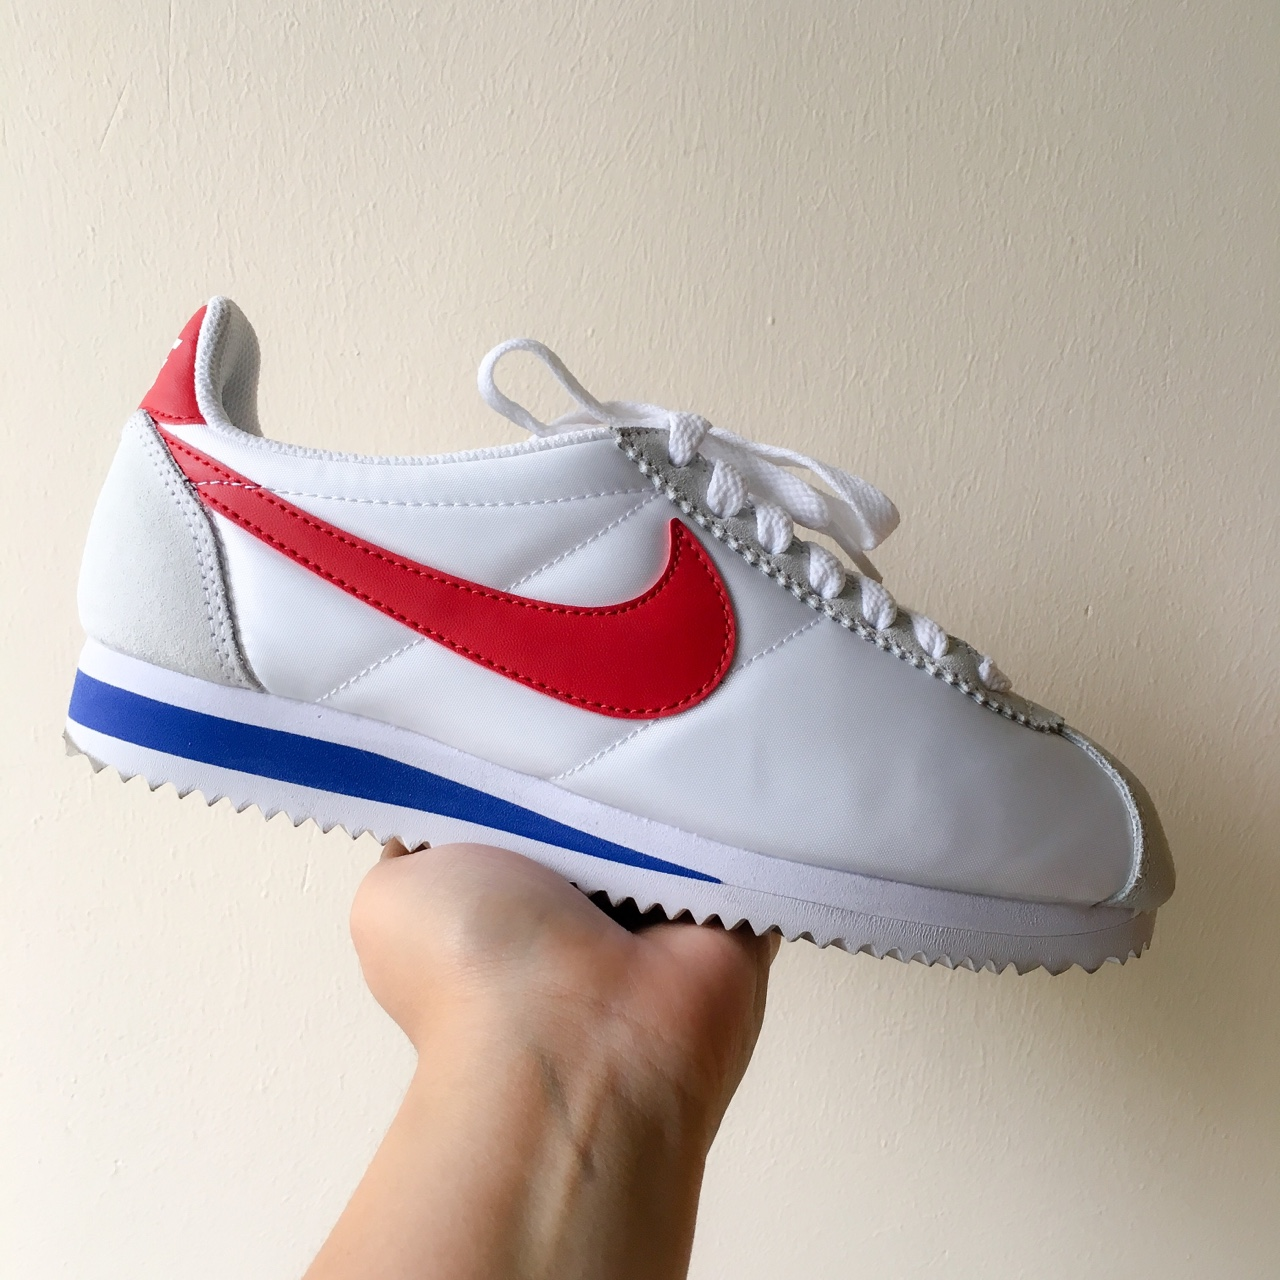 brand new 0549d ebb96 Nike Cortez Nylon white/red. Condition 9/10. With... - Depop